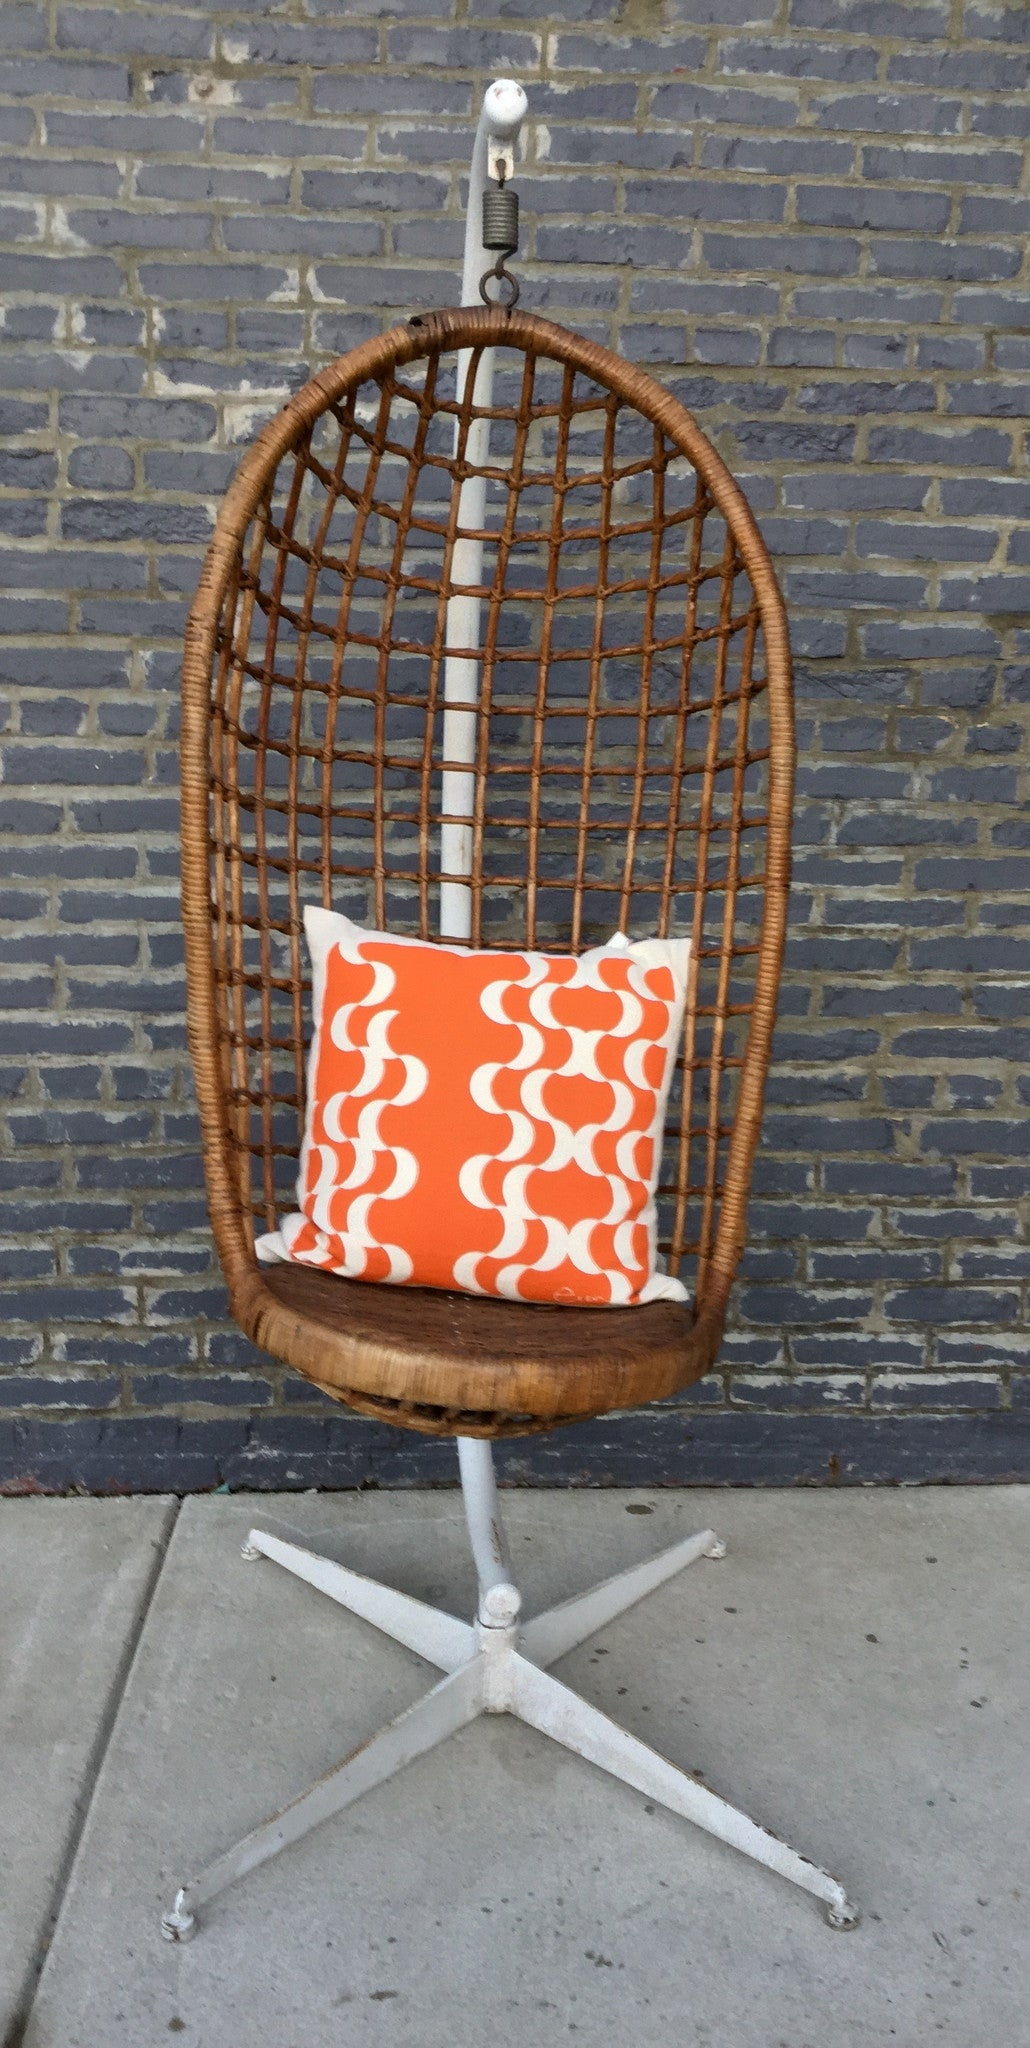 Vintage Rattan Hanging Chair On Stand - Barefoot Dwelling